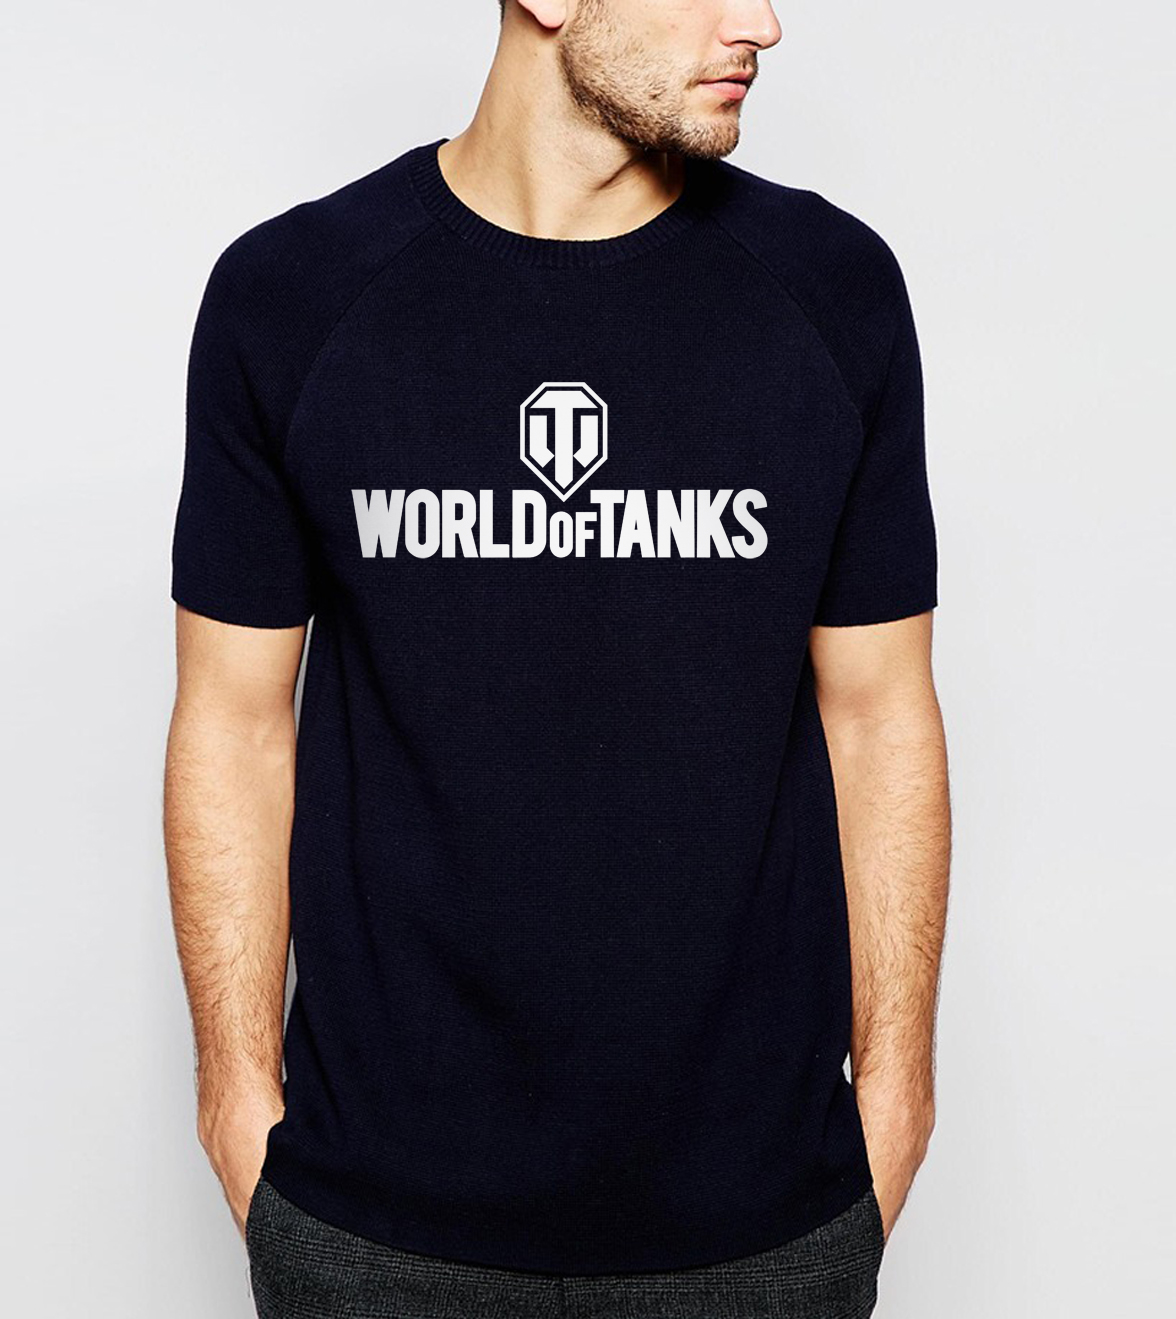 New Arrival War 2 World Of Tanks Print Men T-Shirt 2017 Summer Style 100% Cotton Comfortable Loose Fit Short Sleeve T Shirts